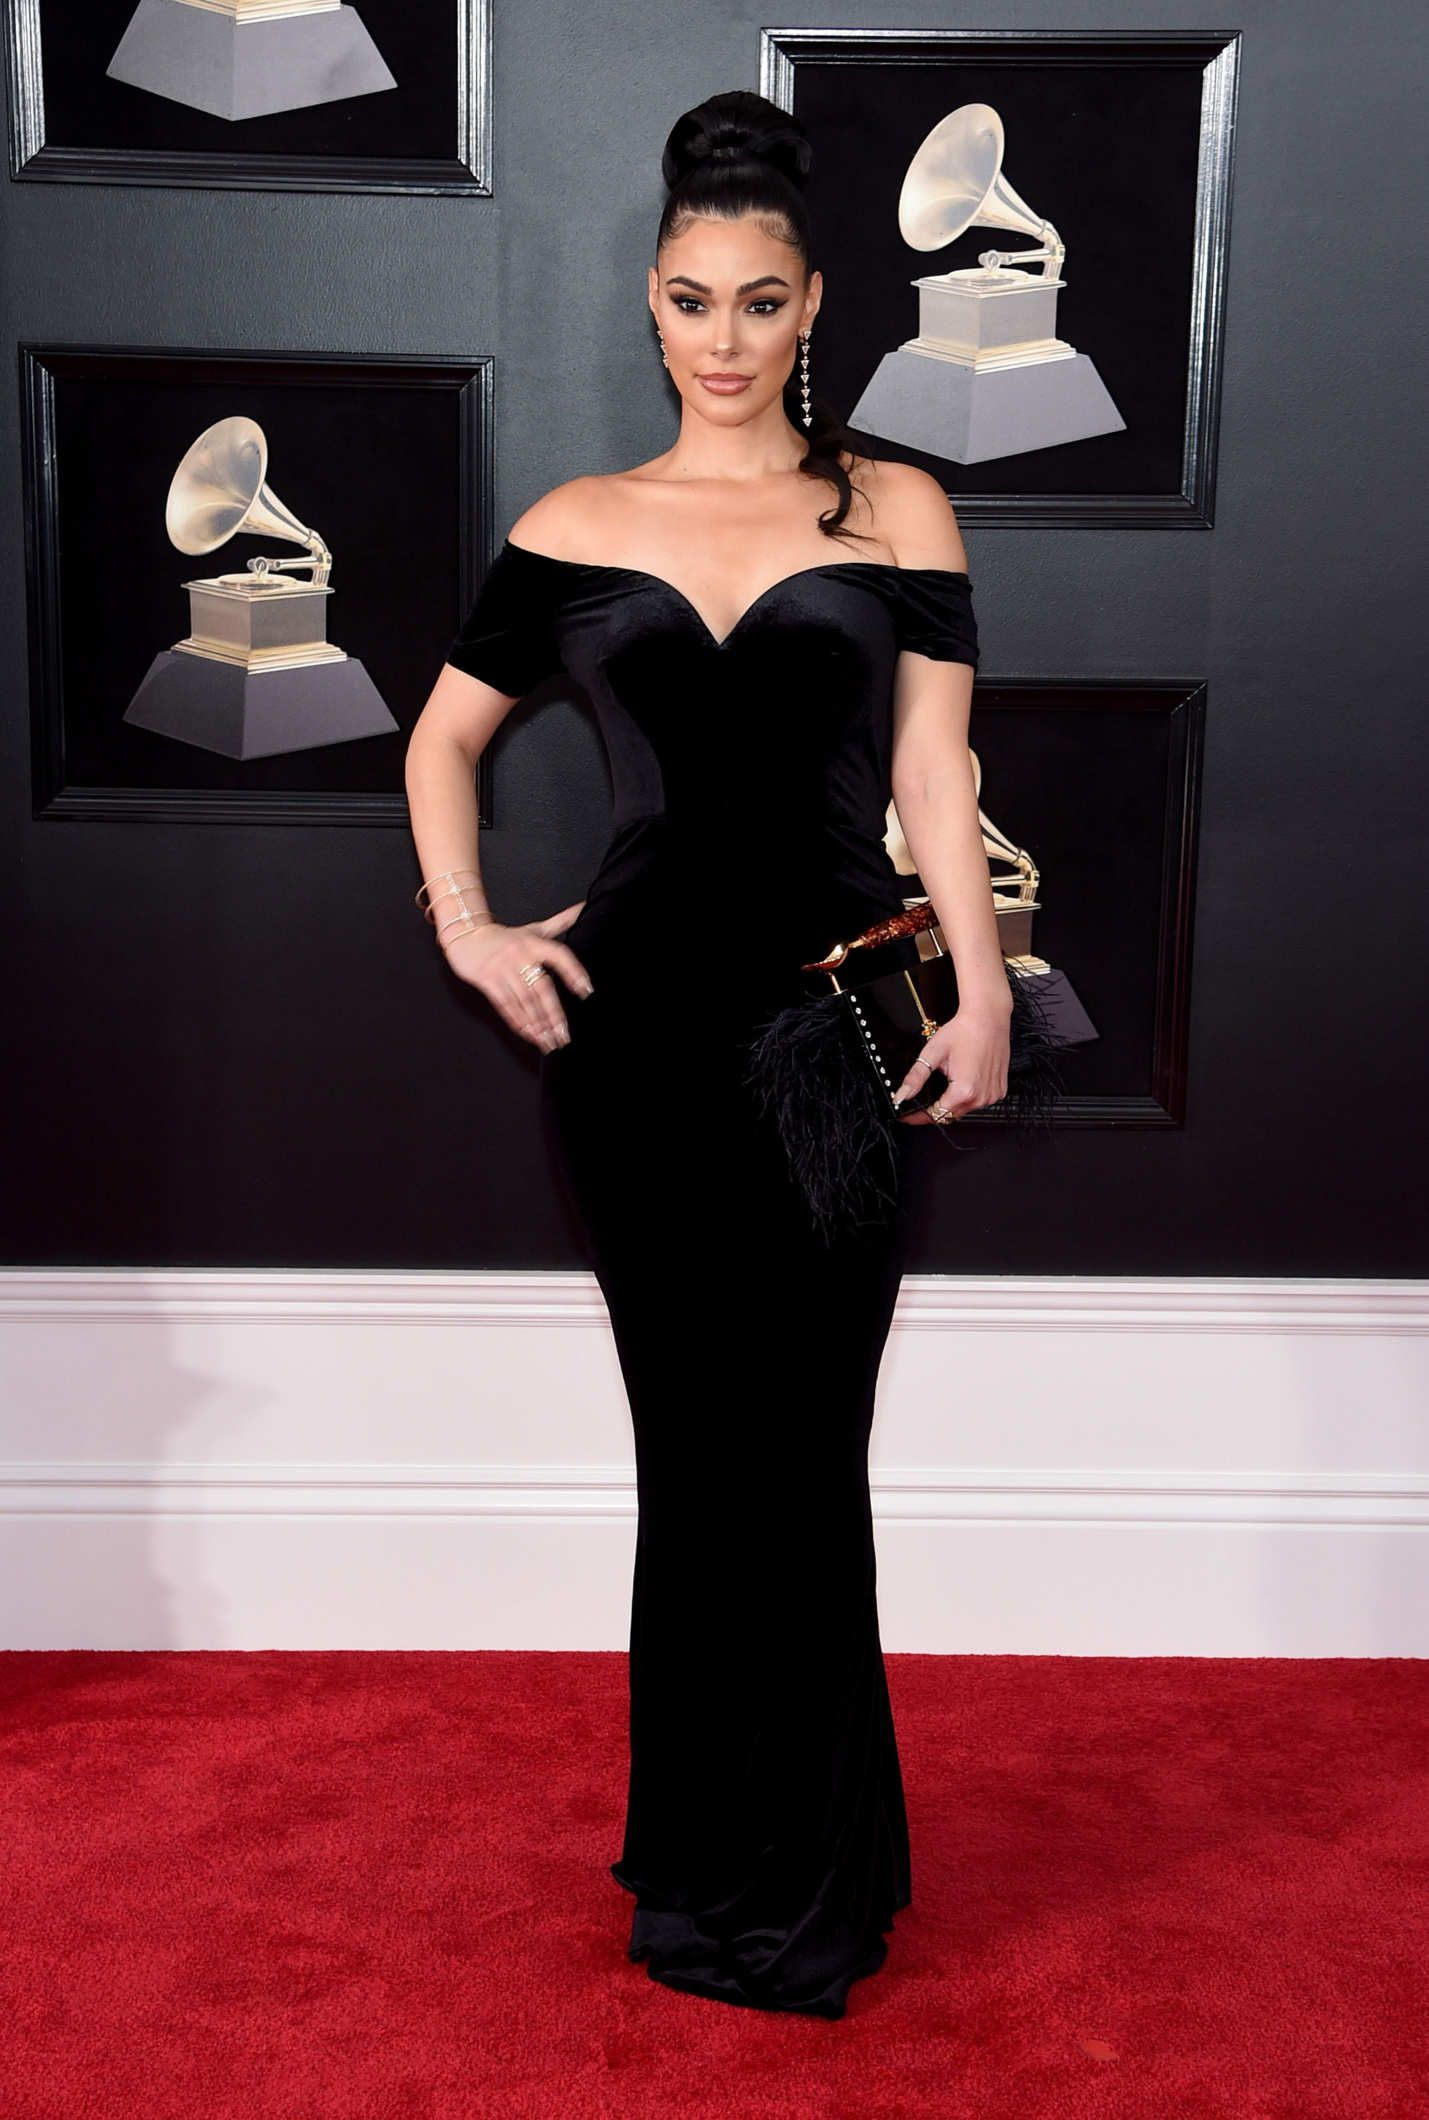 Anabelle Acosta At The 2018 Grammy Awards 2018 Grammys Awards